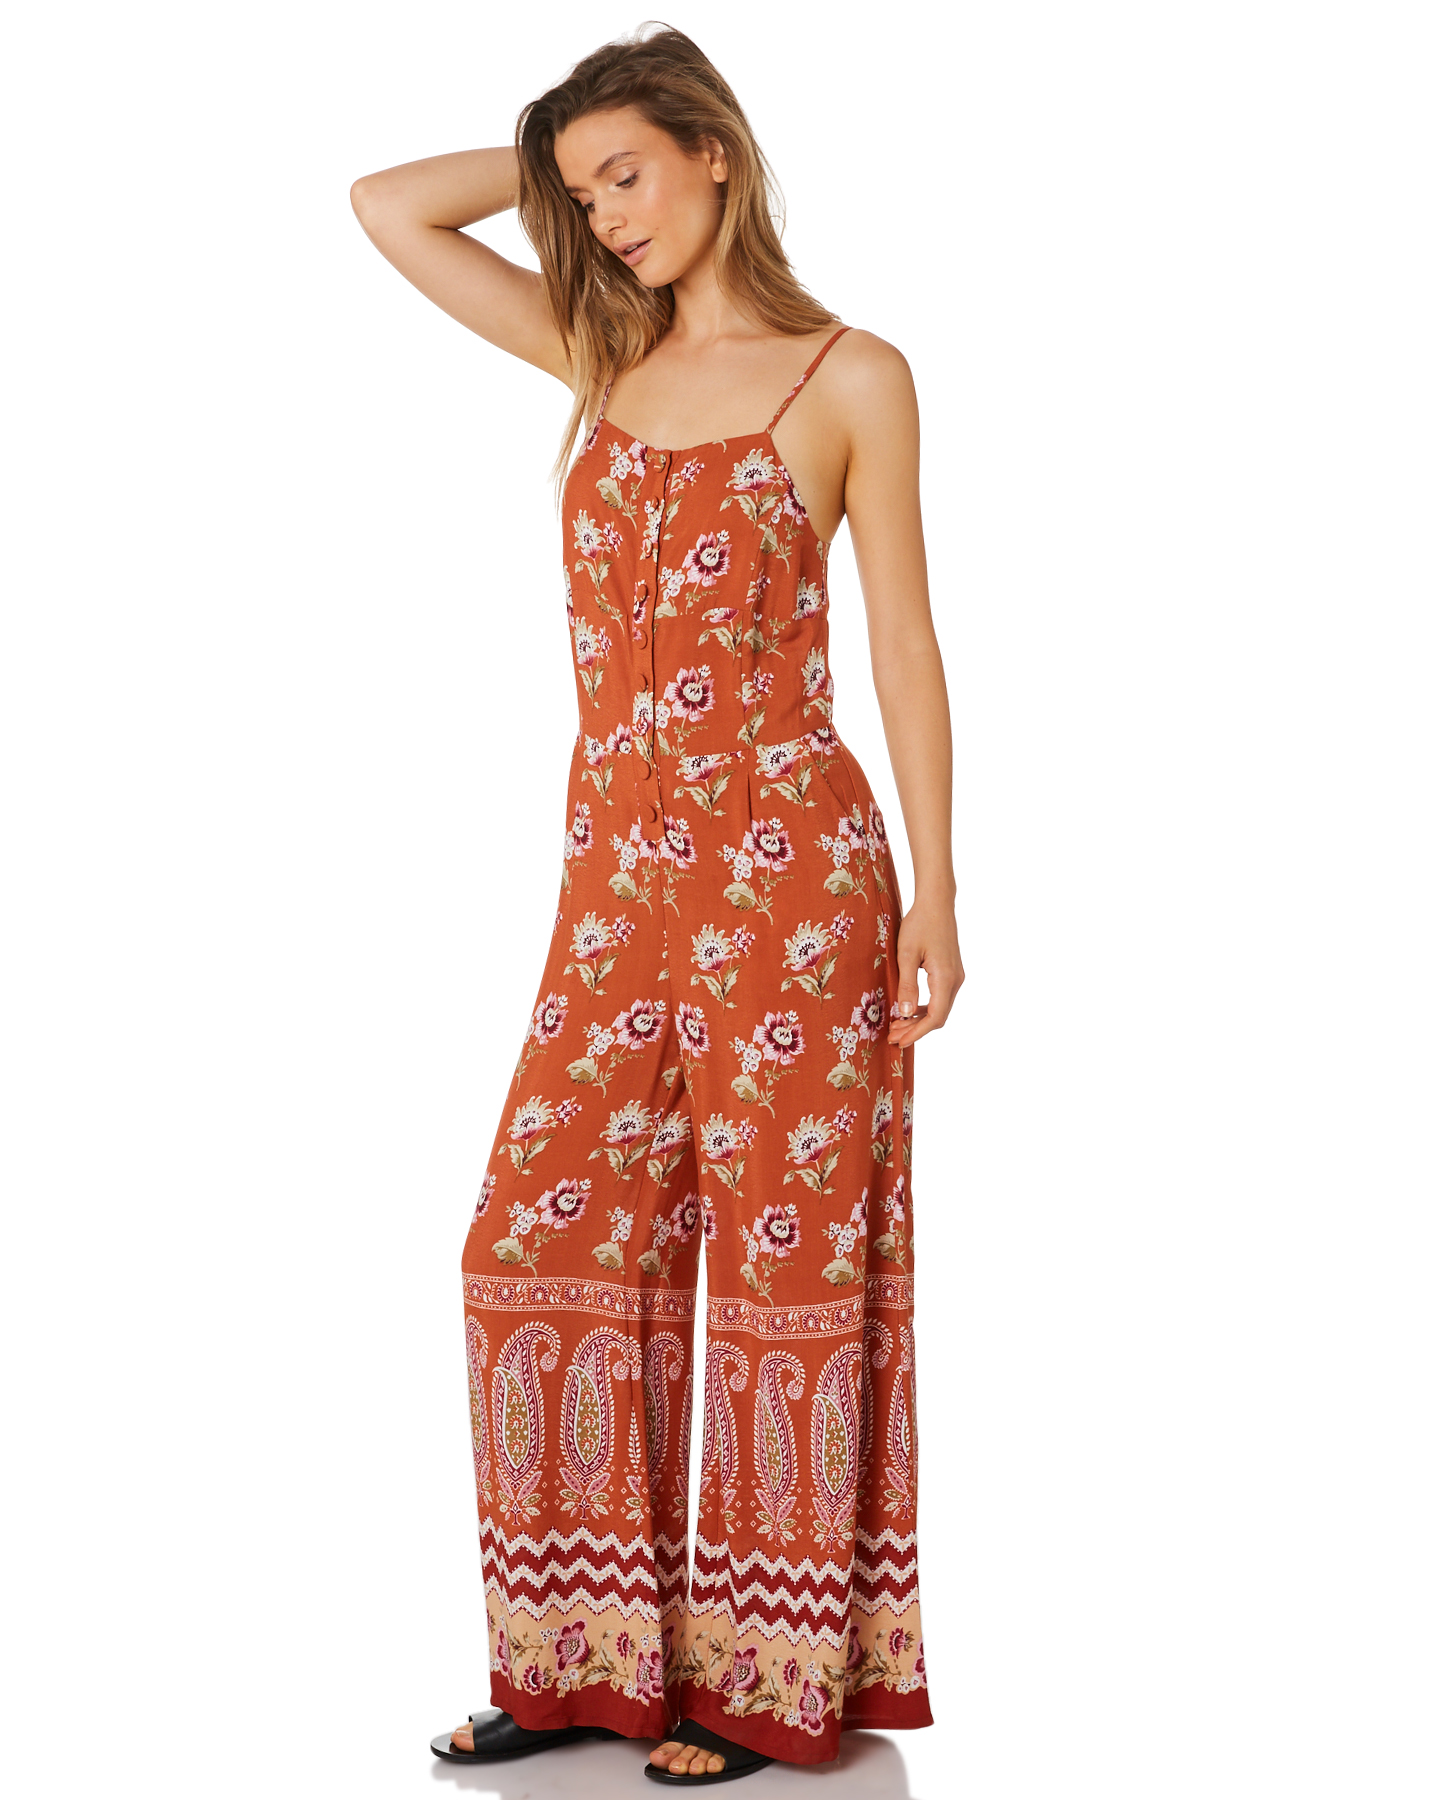 fc45bff3b0 ... RUST WOMENS CLOTHING TIGERLILY PLAYSUITS + OVERALLS - T395437RUS ...